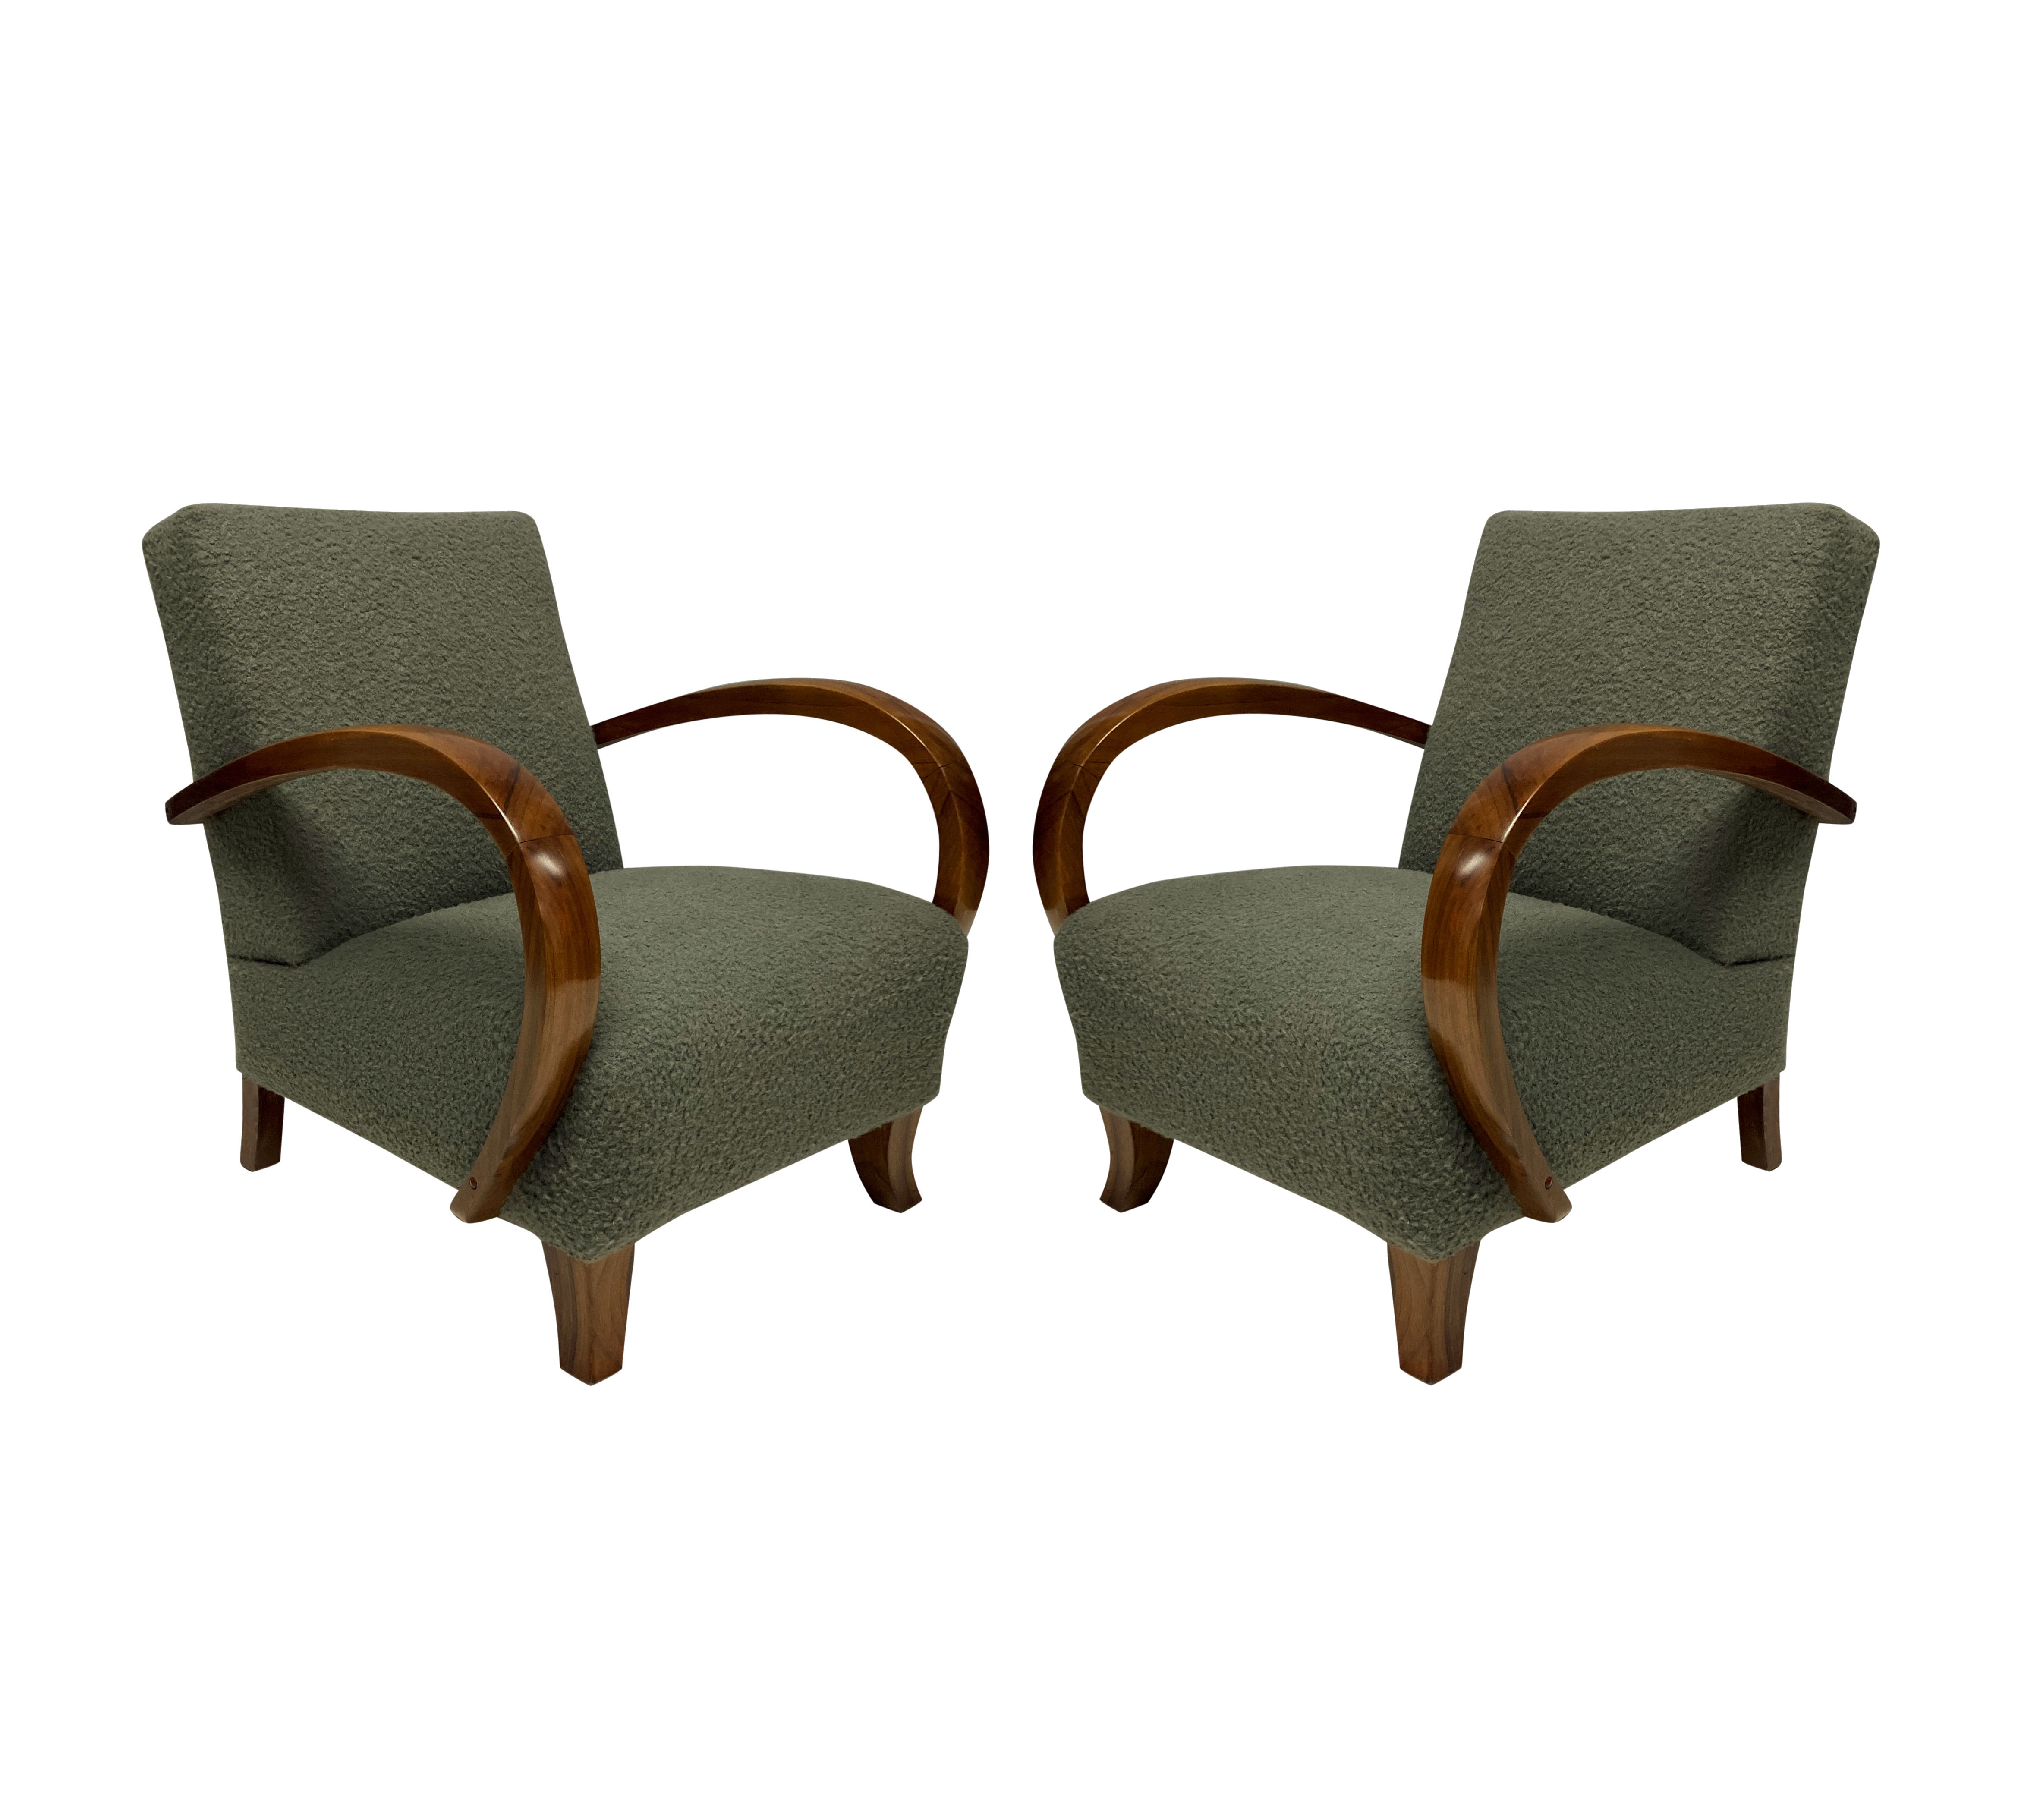 A PAIR OF FRENCH 1940'S ARMCHAIRS